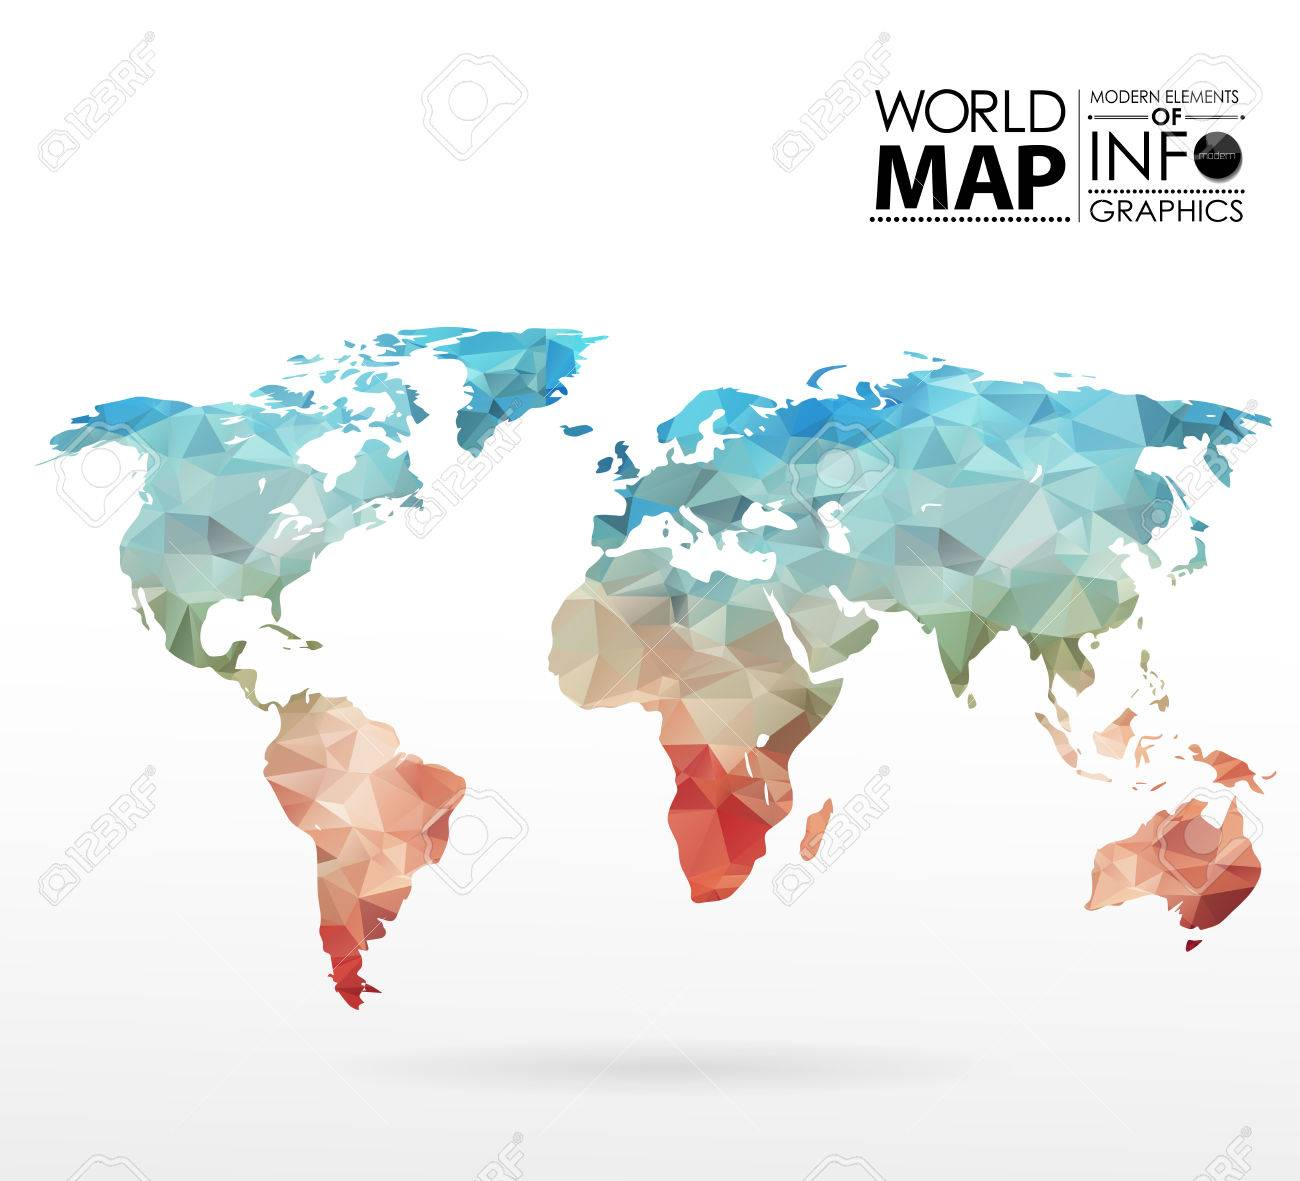 World map background in polygonal style modern elements of info vector world map background in polygonal style modern elements of info graphics world map gumiabroncs Gallery